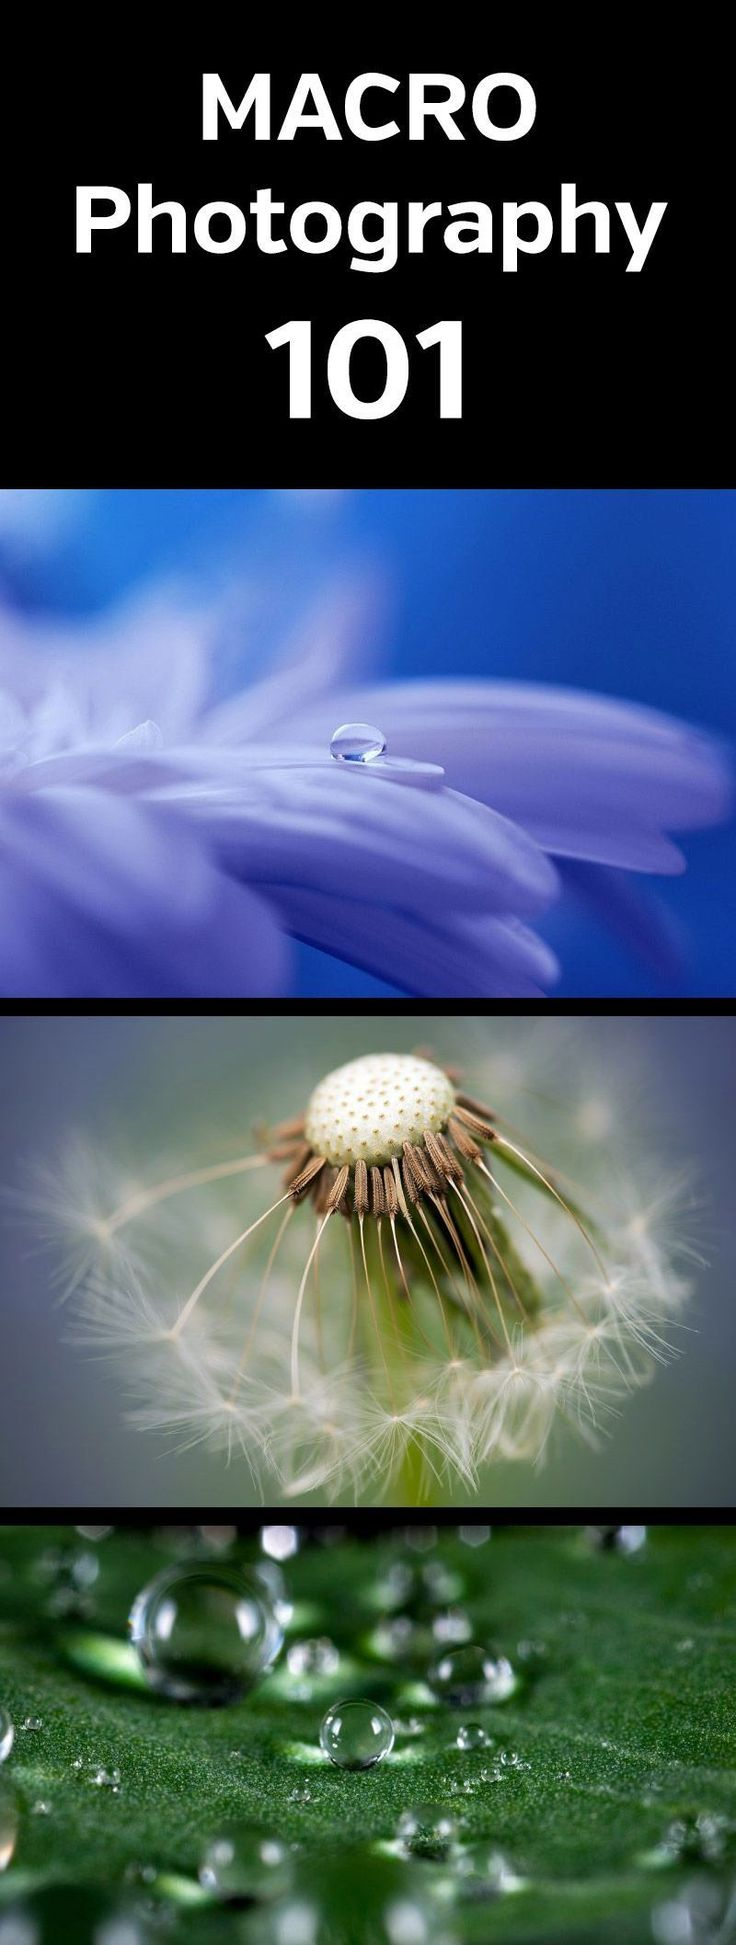 Macro Photography 101. Intro to macro photography and how to get amazing close up photos. Flowers, insects, rain drops, micro, mini, lens, gear, tips, article, tutorial, guide #macrophotography #photographytips #photography